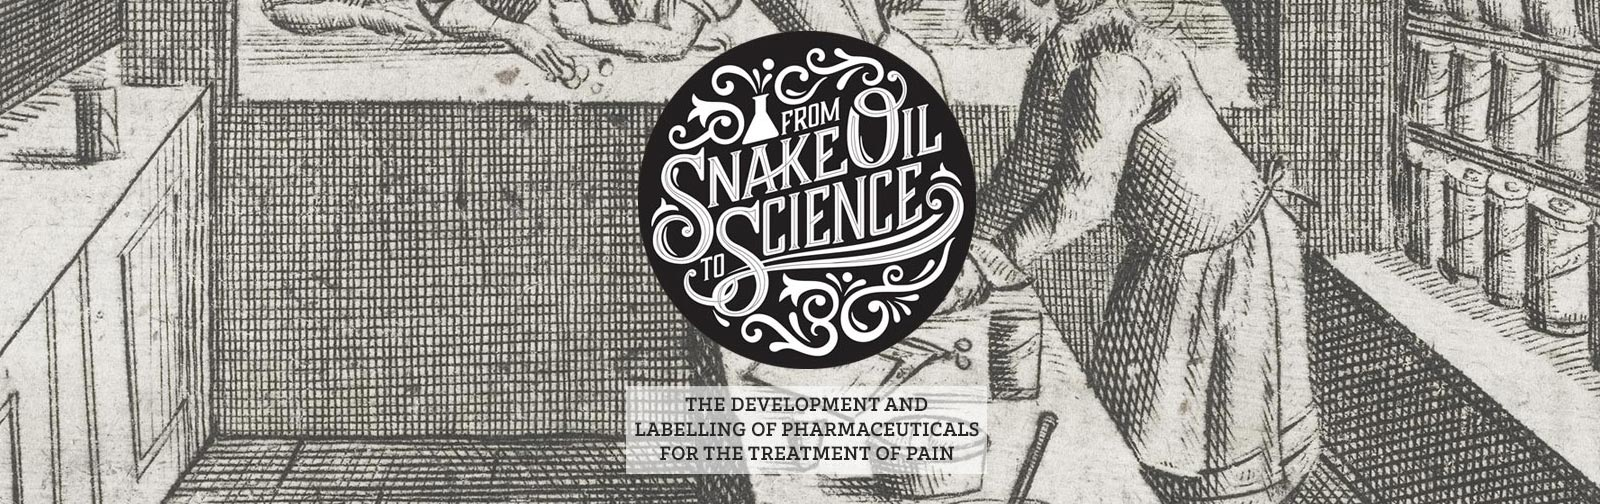 Snake Oil to Science Online Exhibition